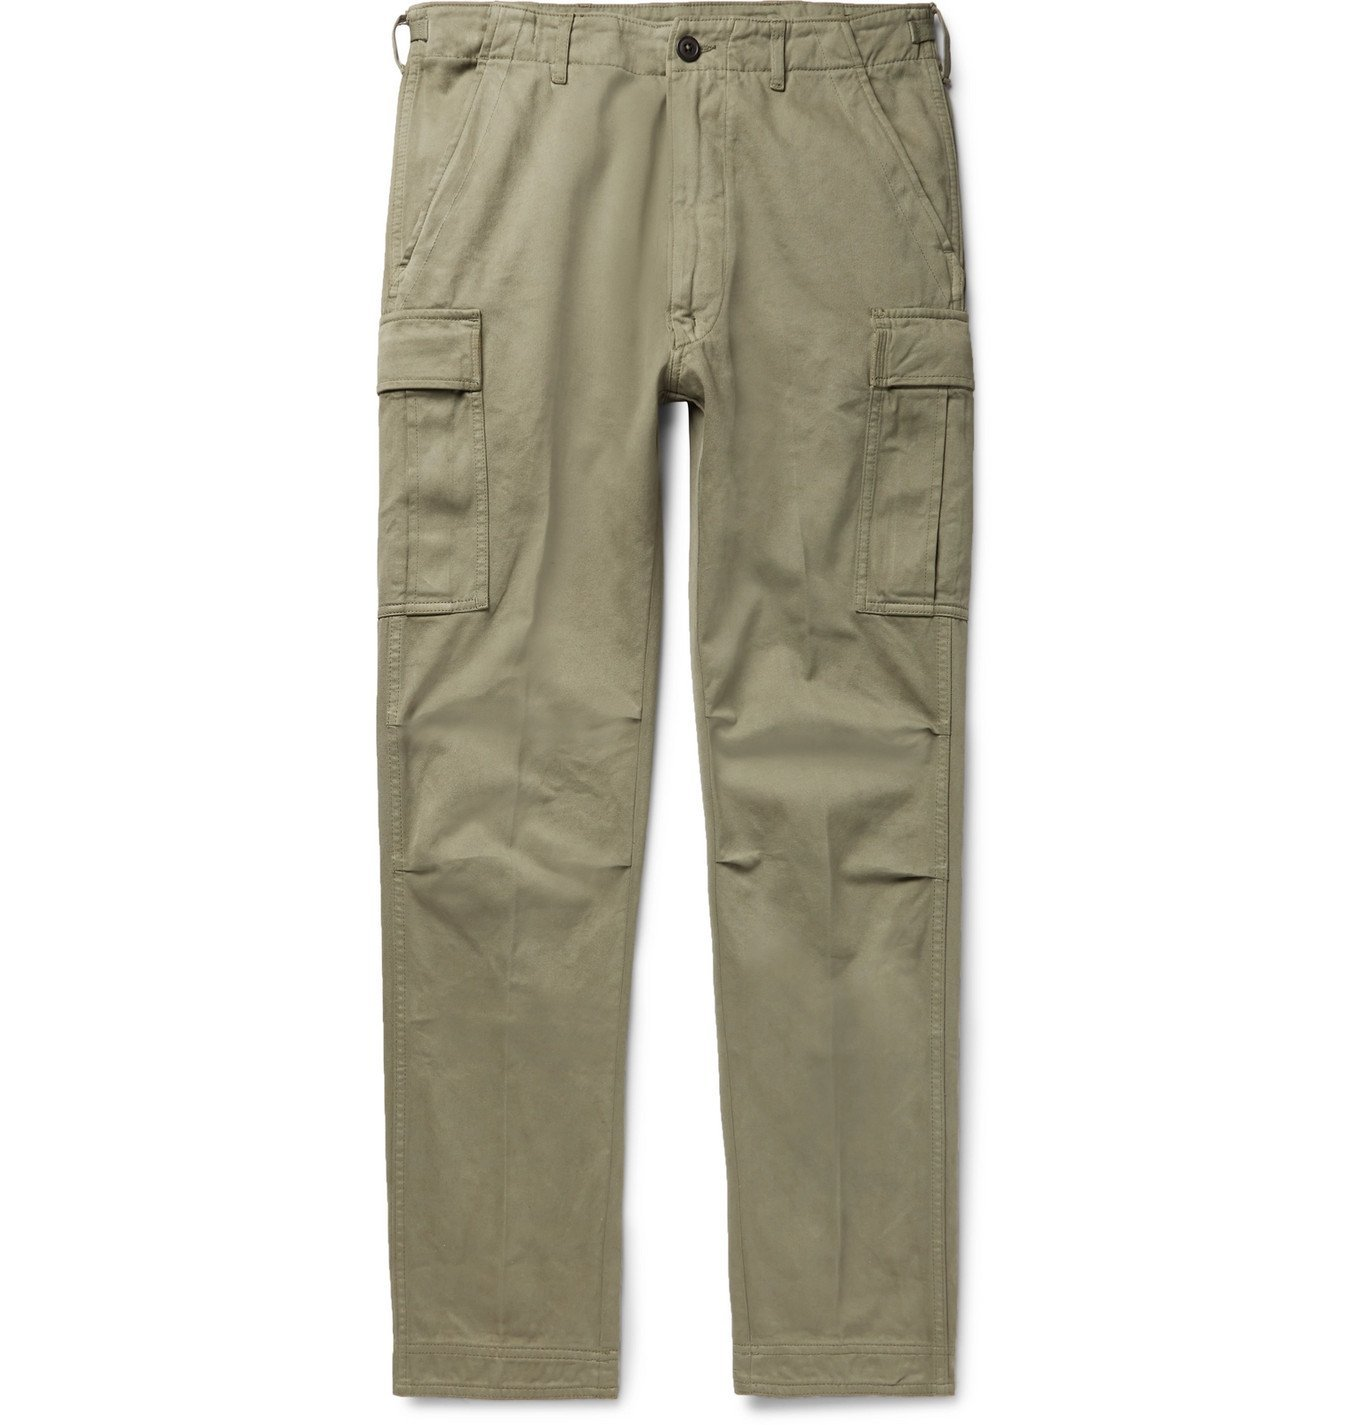 TOM FORD - Slim-Fit Cotton-Twill Cargo Trousers - Green